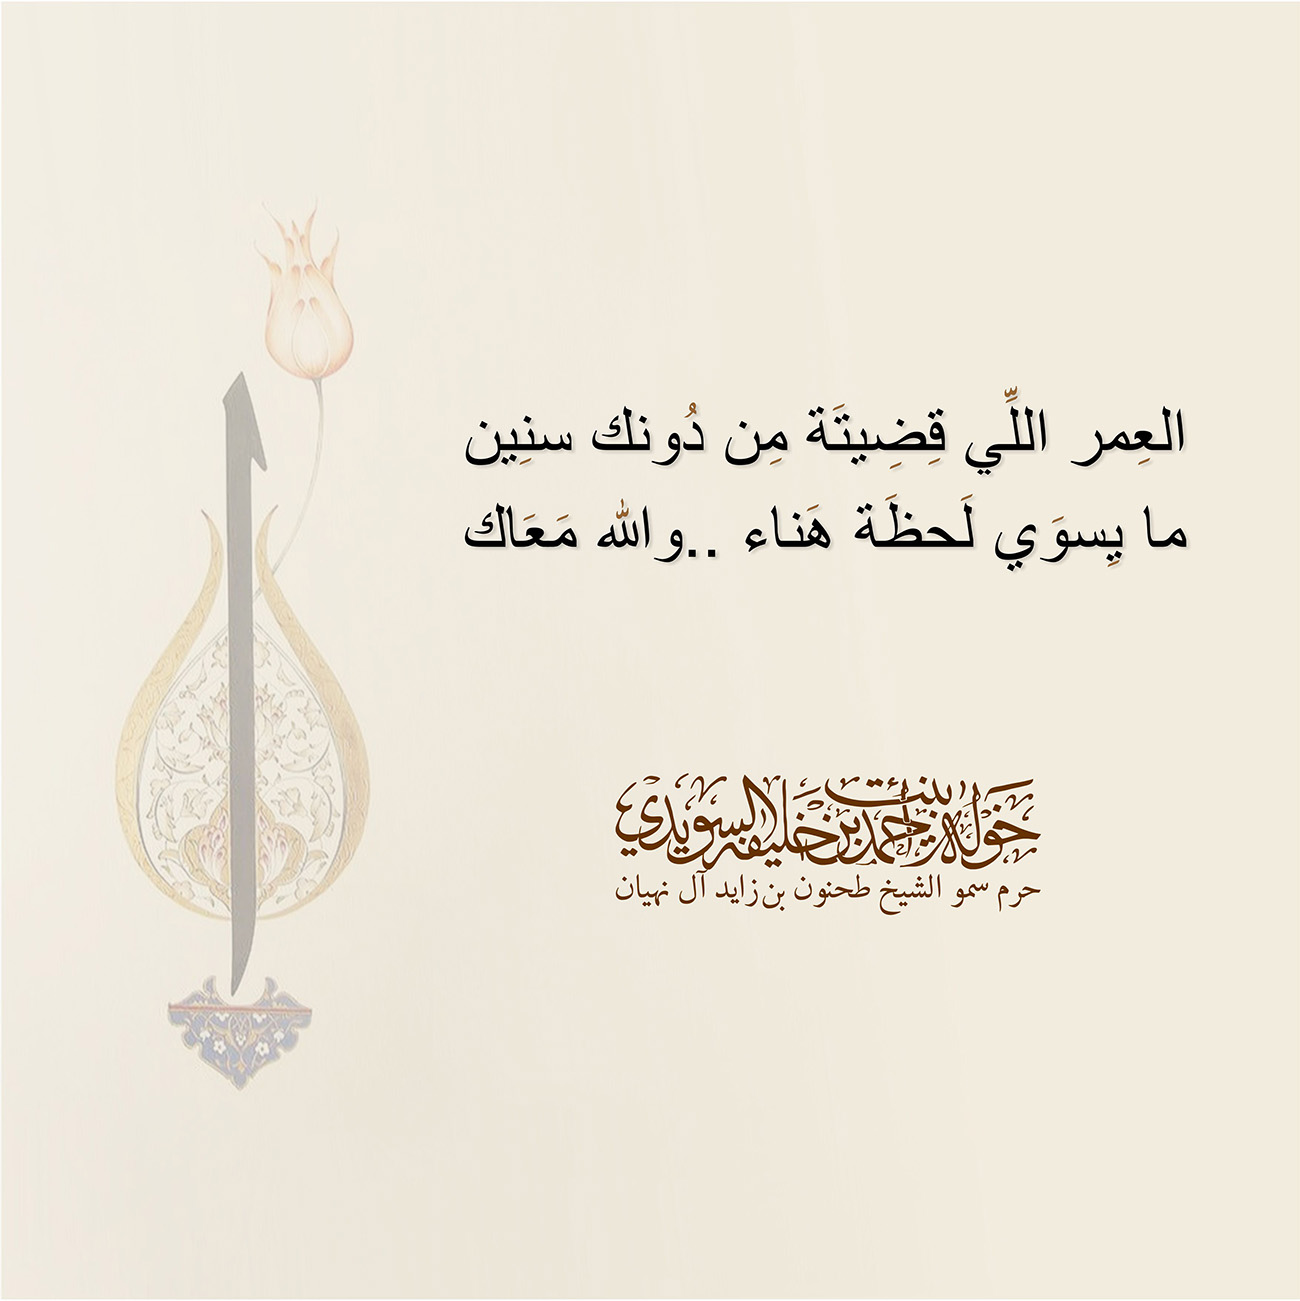 العِمر اللِّي قِضِيتَة مِن دُونك سنِين